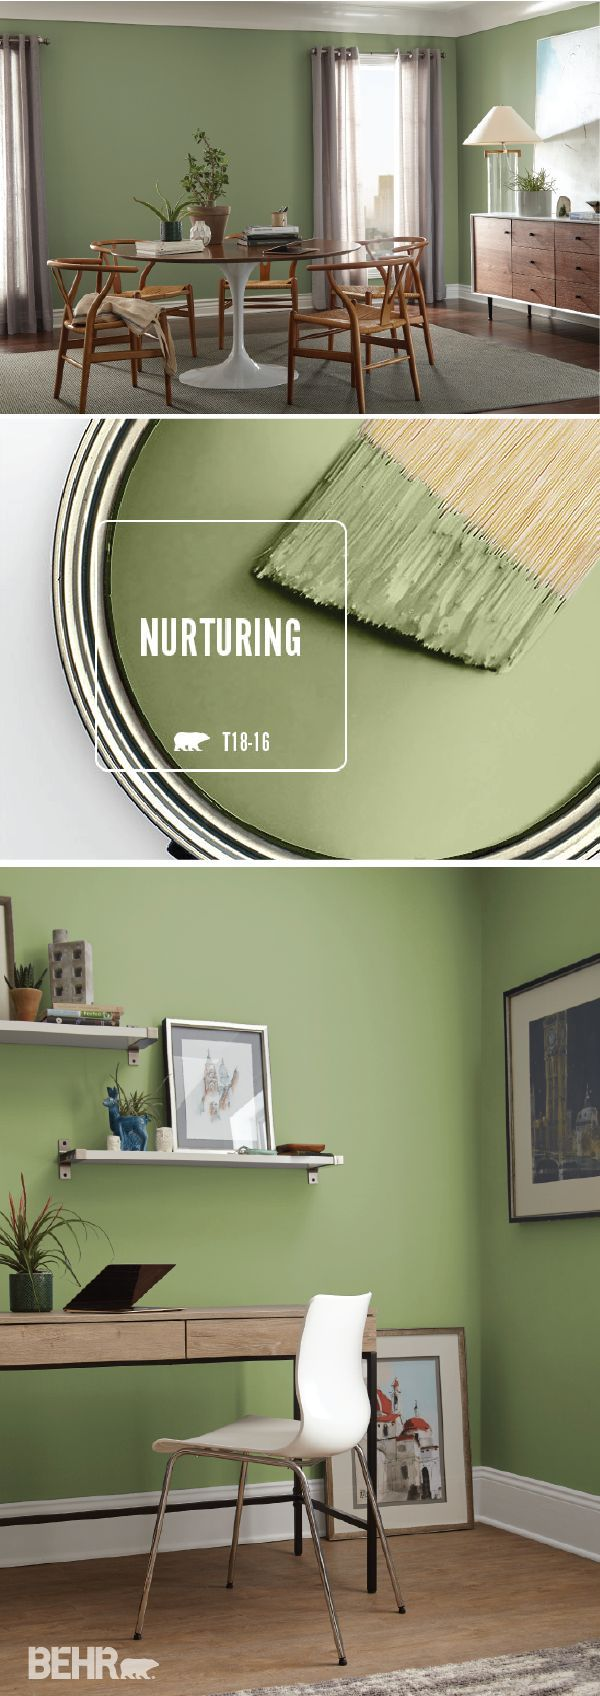 Home Decorating Ideas Bathroom Turn your home into a peaceful oasis with the BEHR Paint Color of the Month: Nur…